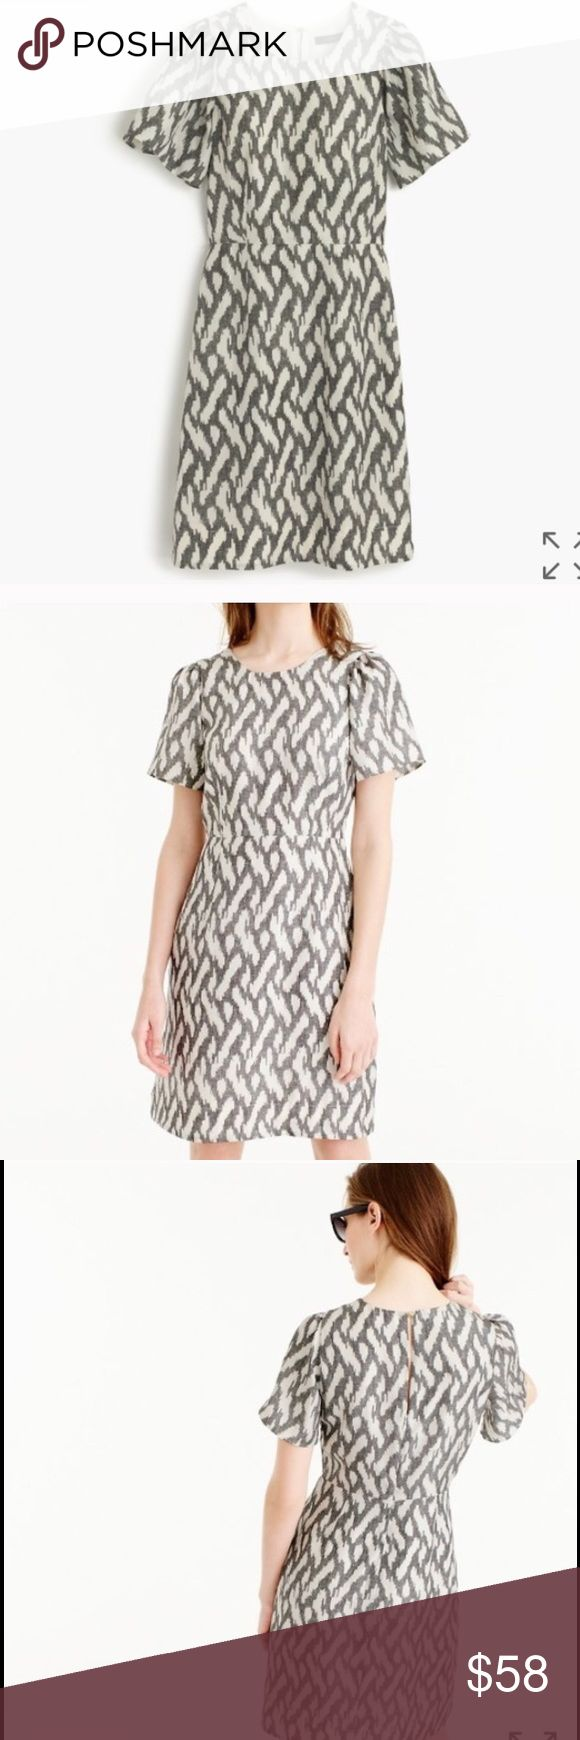 NWT    J. Crew Flutter Sleeve Ikat Dress Sz 4 NWT J. Crew sz 4 Falls just above the knee. Flattering and waist defining. Silk. Back keyhole. Perfect for spring/summer!!! Make an offer!! 👗 J. Crew Dresses